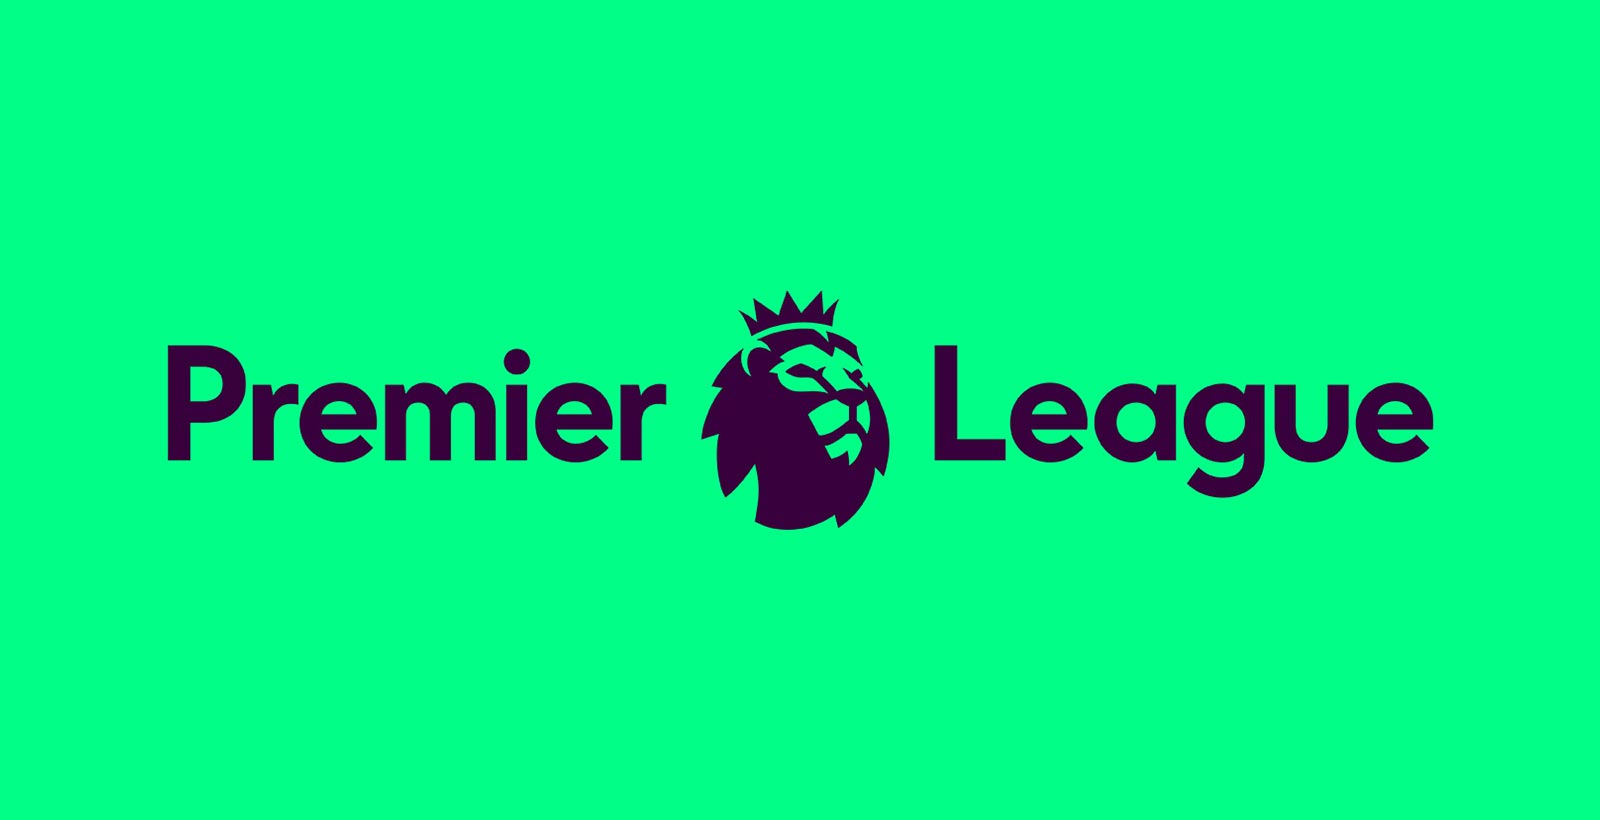 Premier League - English Top Flight Football